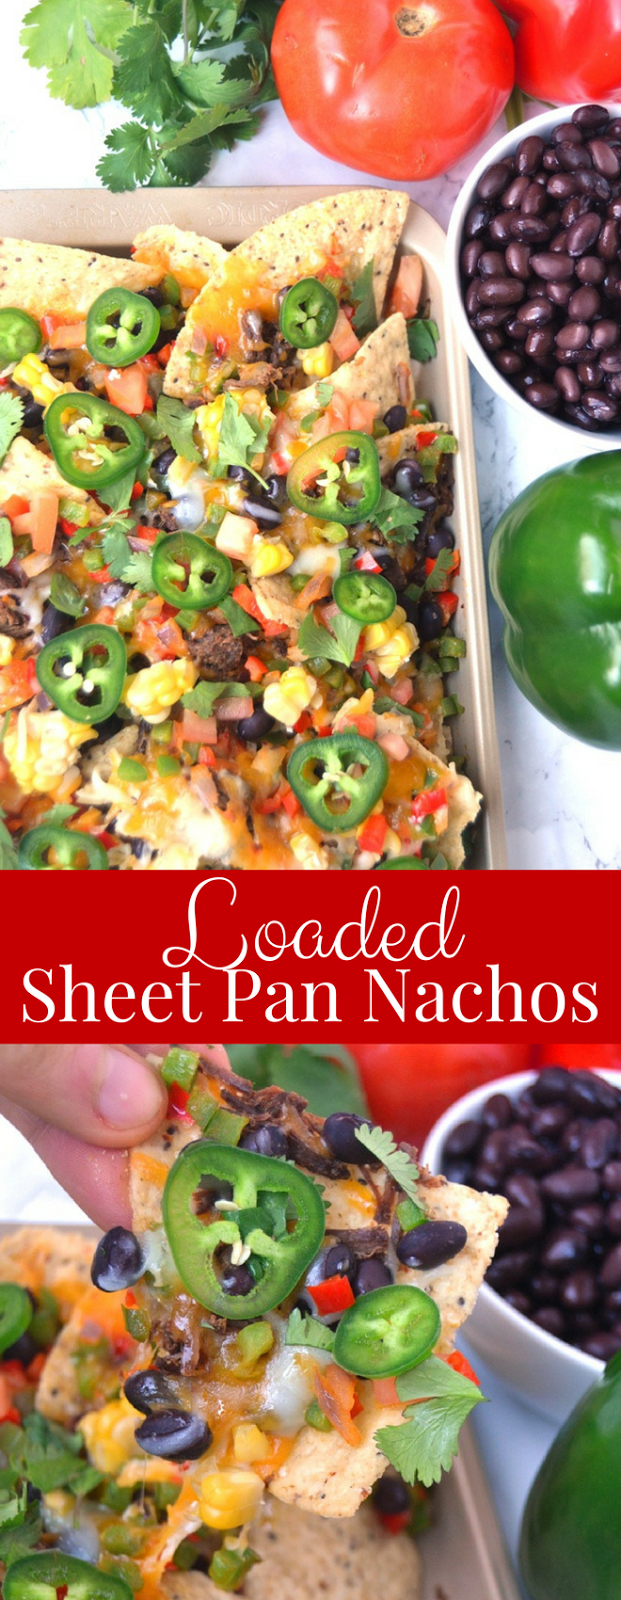 Loaded Sheet Pan Nachos come together in 15 minutes and are packed with sauteed black beans, bell peppers, melted cheese, jalapenos, corn, cilantro, tomatoes and shredded steak! www.nutitionistreviews.com